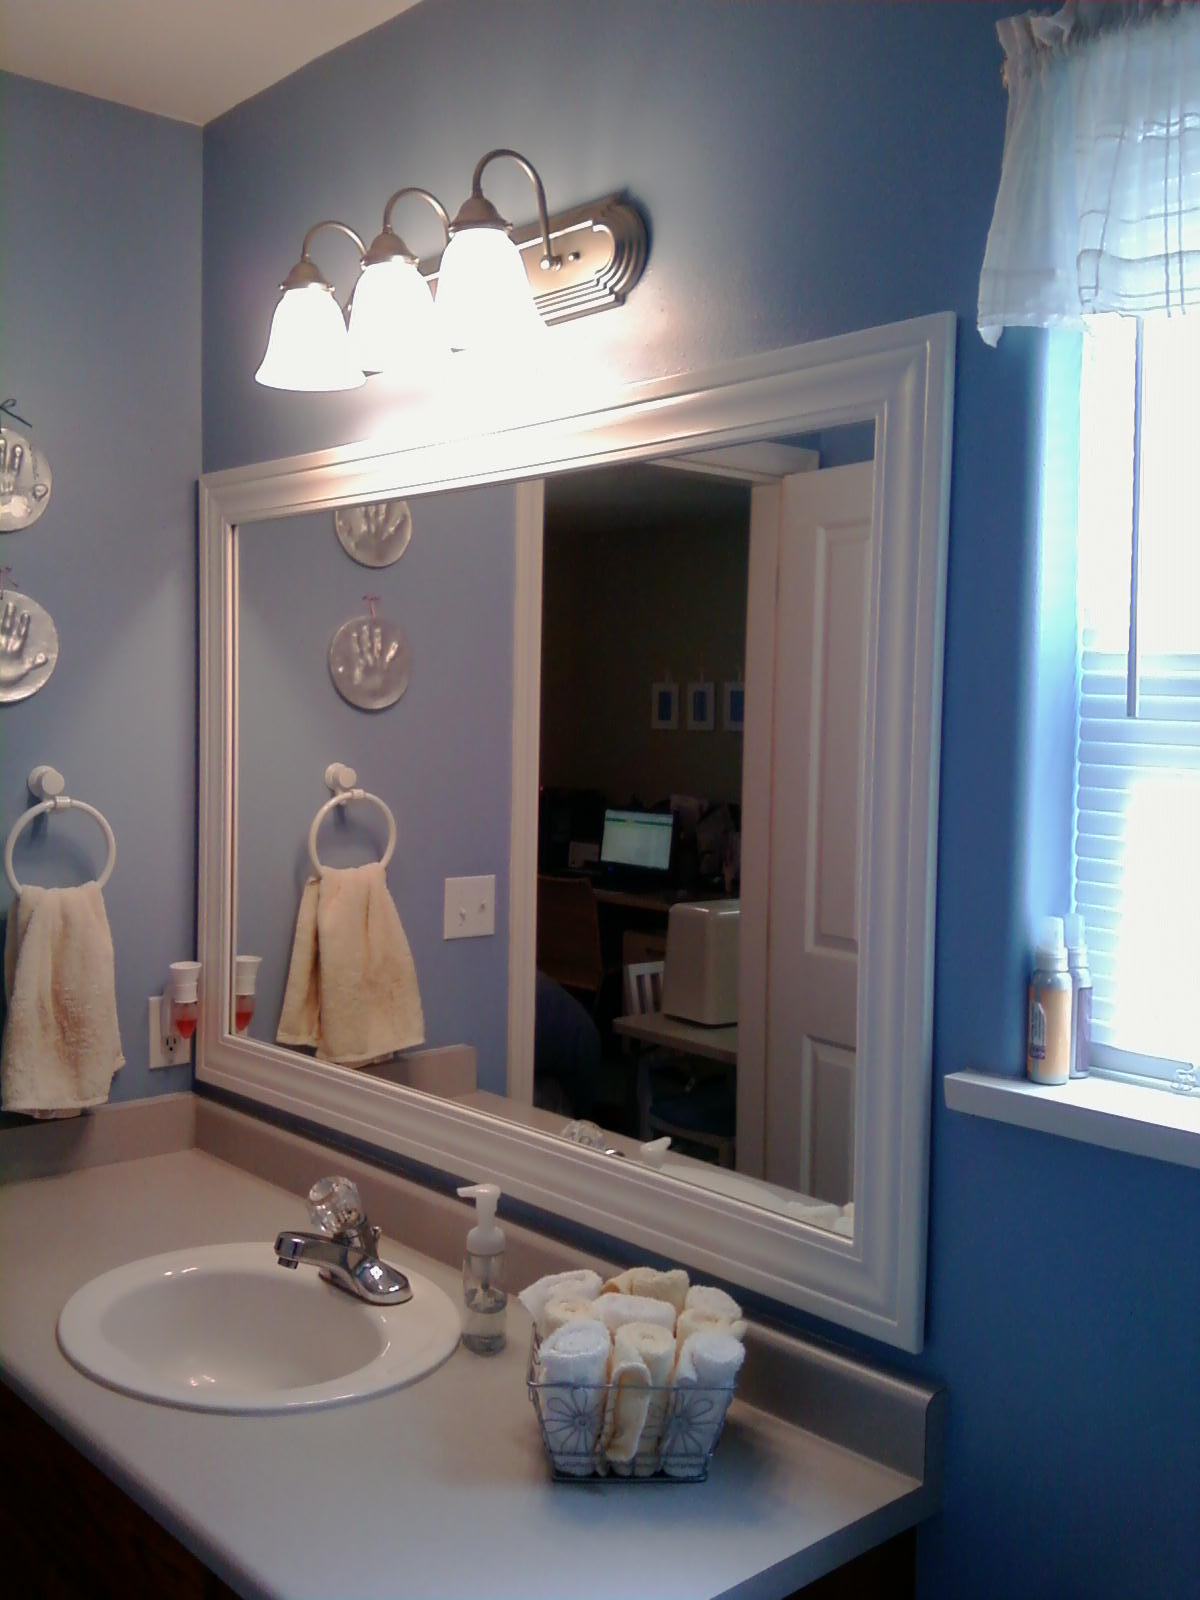 Mirror Frames For Bathrooms: This Thrifty House: Framed Bathroom Mirror